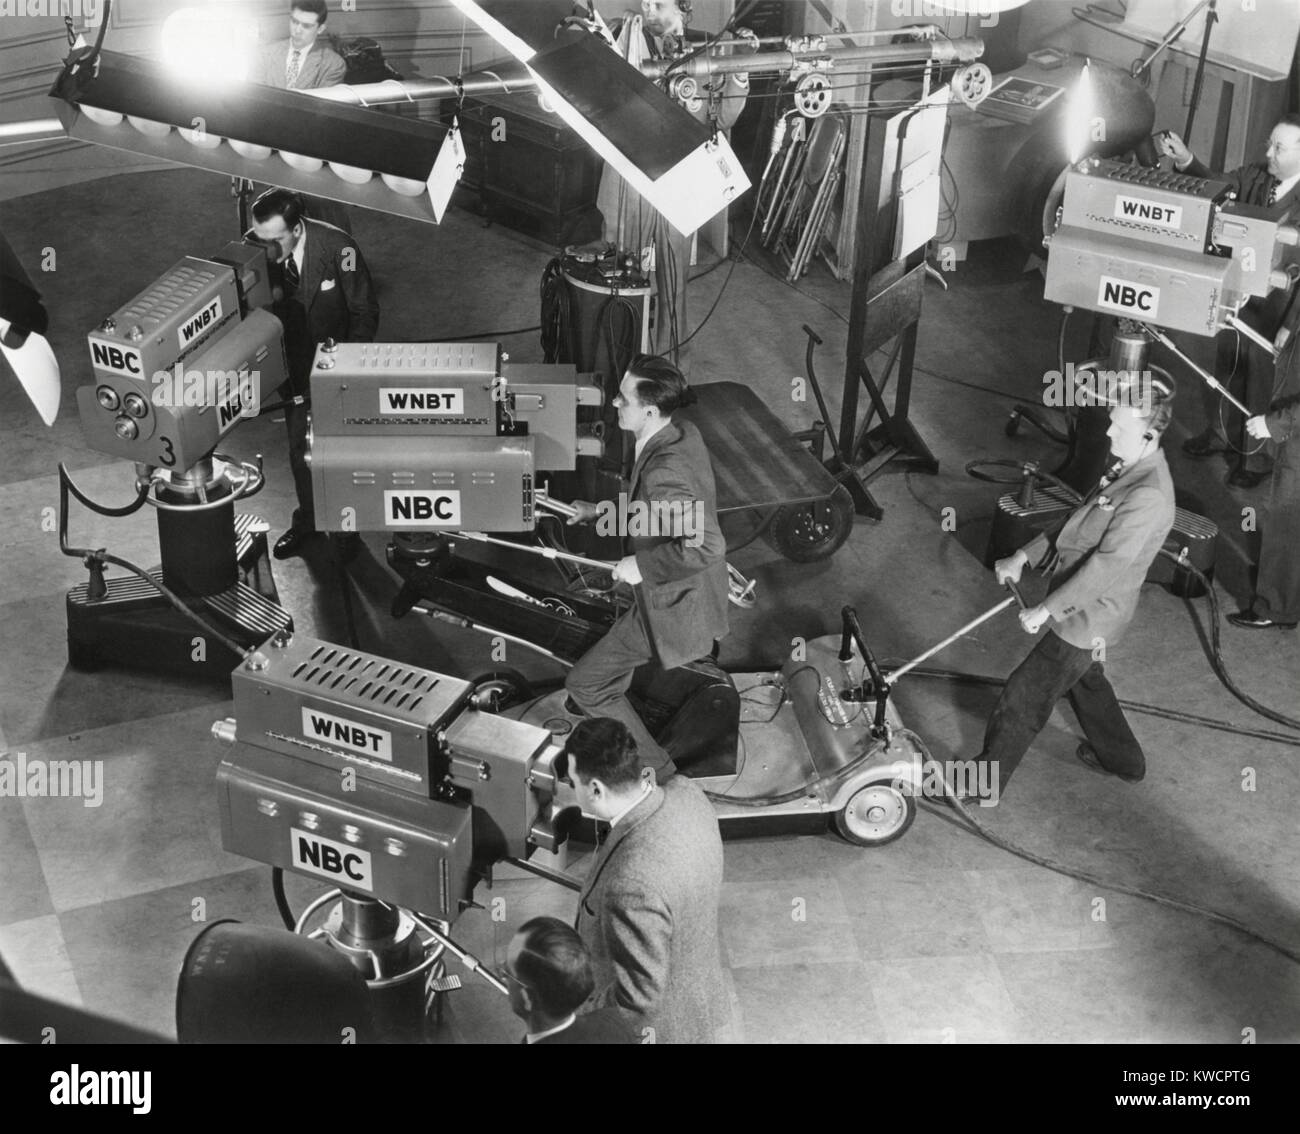 Cameras are tested on the television studio set before the program goes on the air. - (BSLOC_2014_17_139) - Stock Image